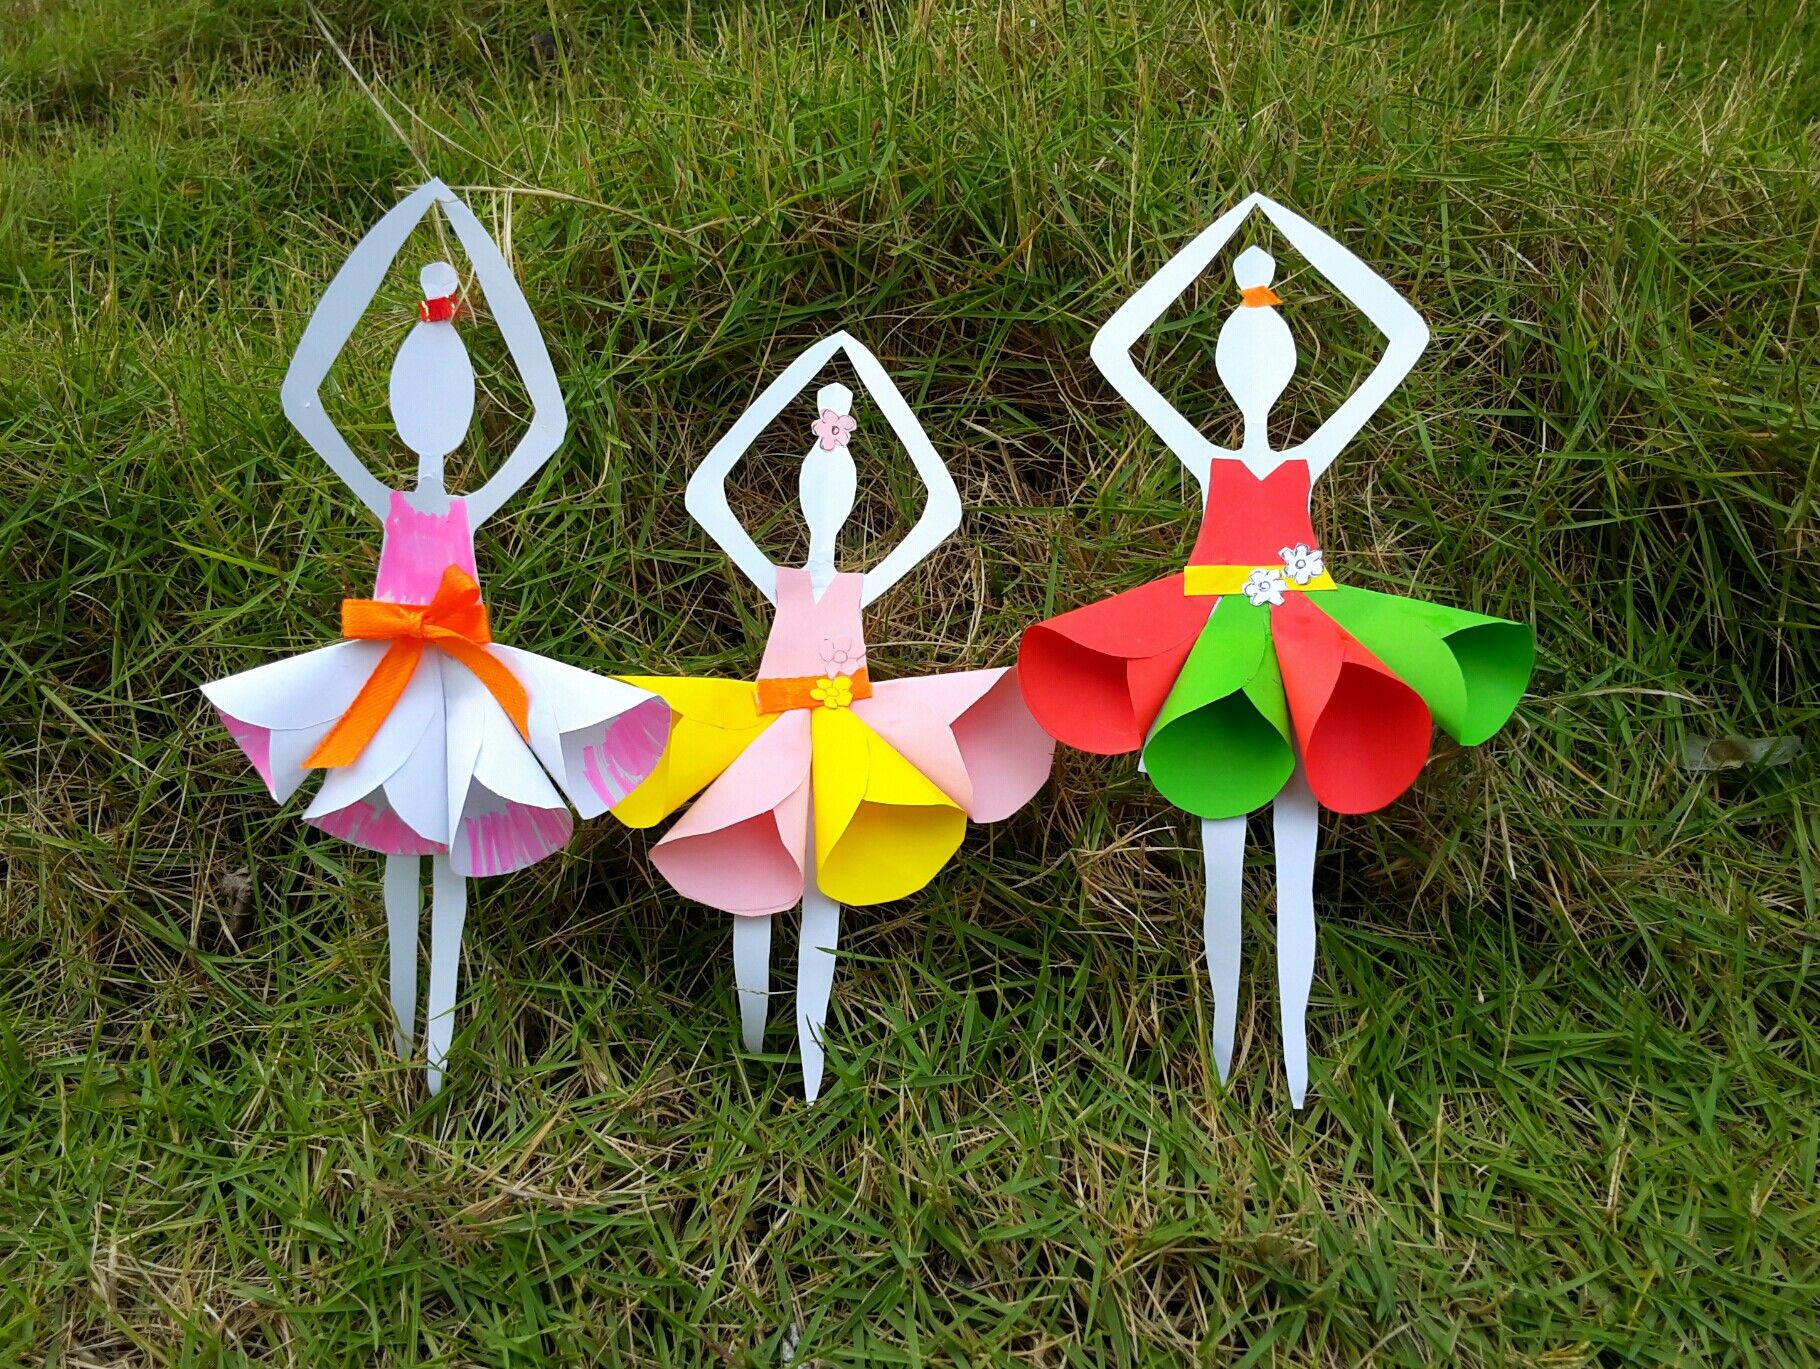 How To Make Paper Doll Its Easy And Fun Paper Crafts Wedding Paper Crafts Crafts